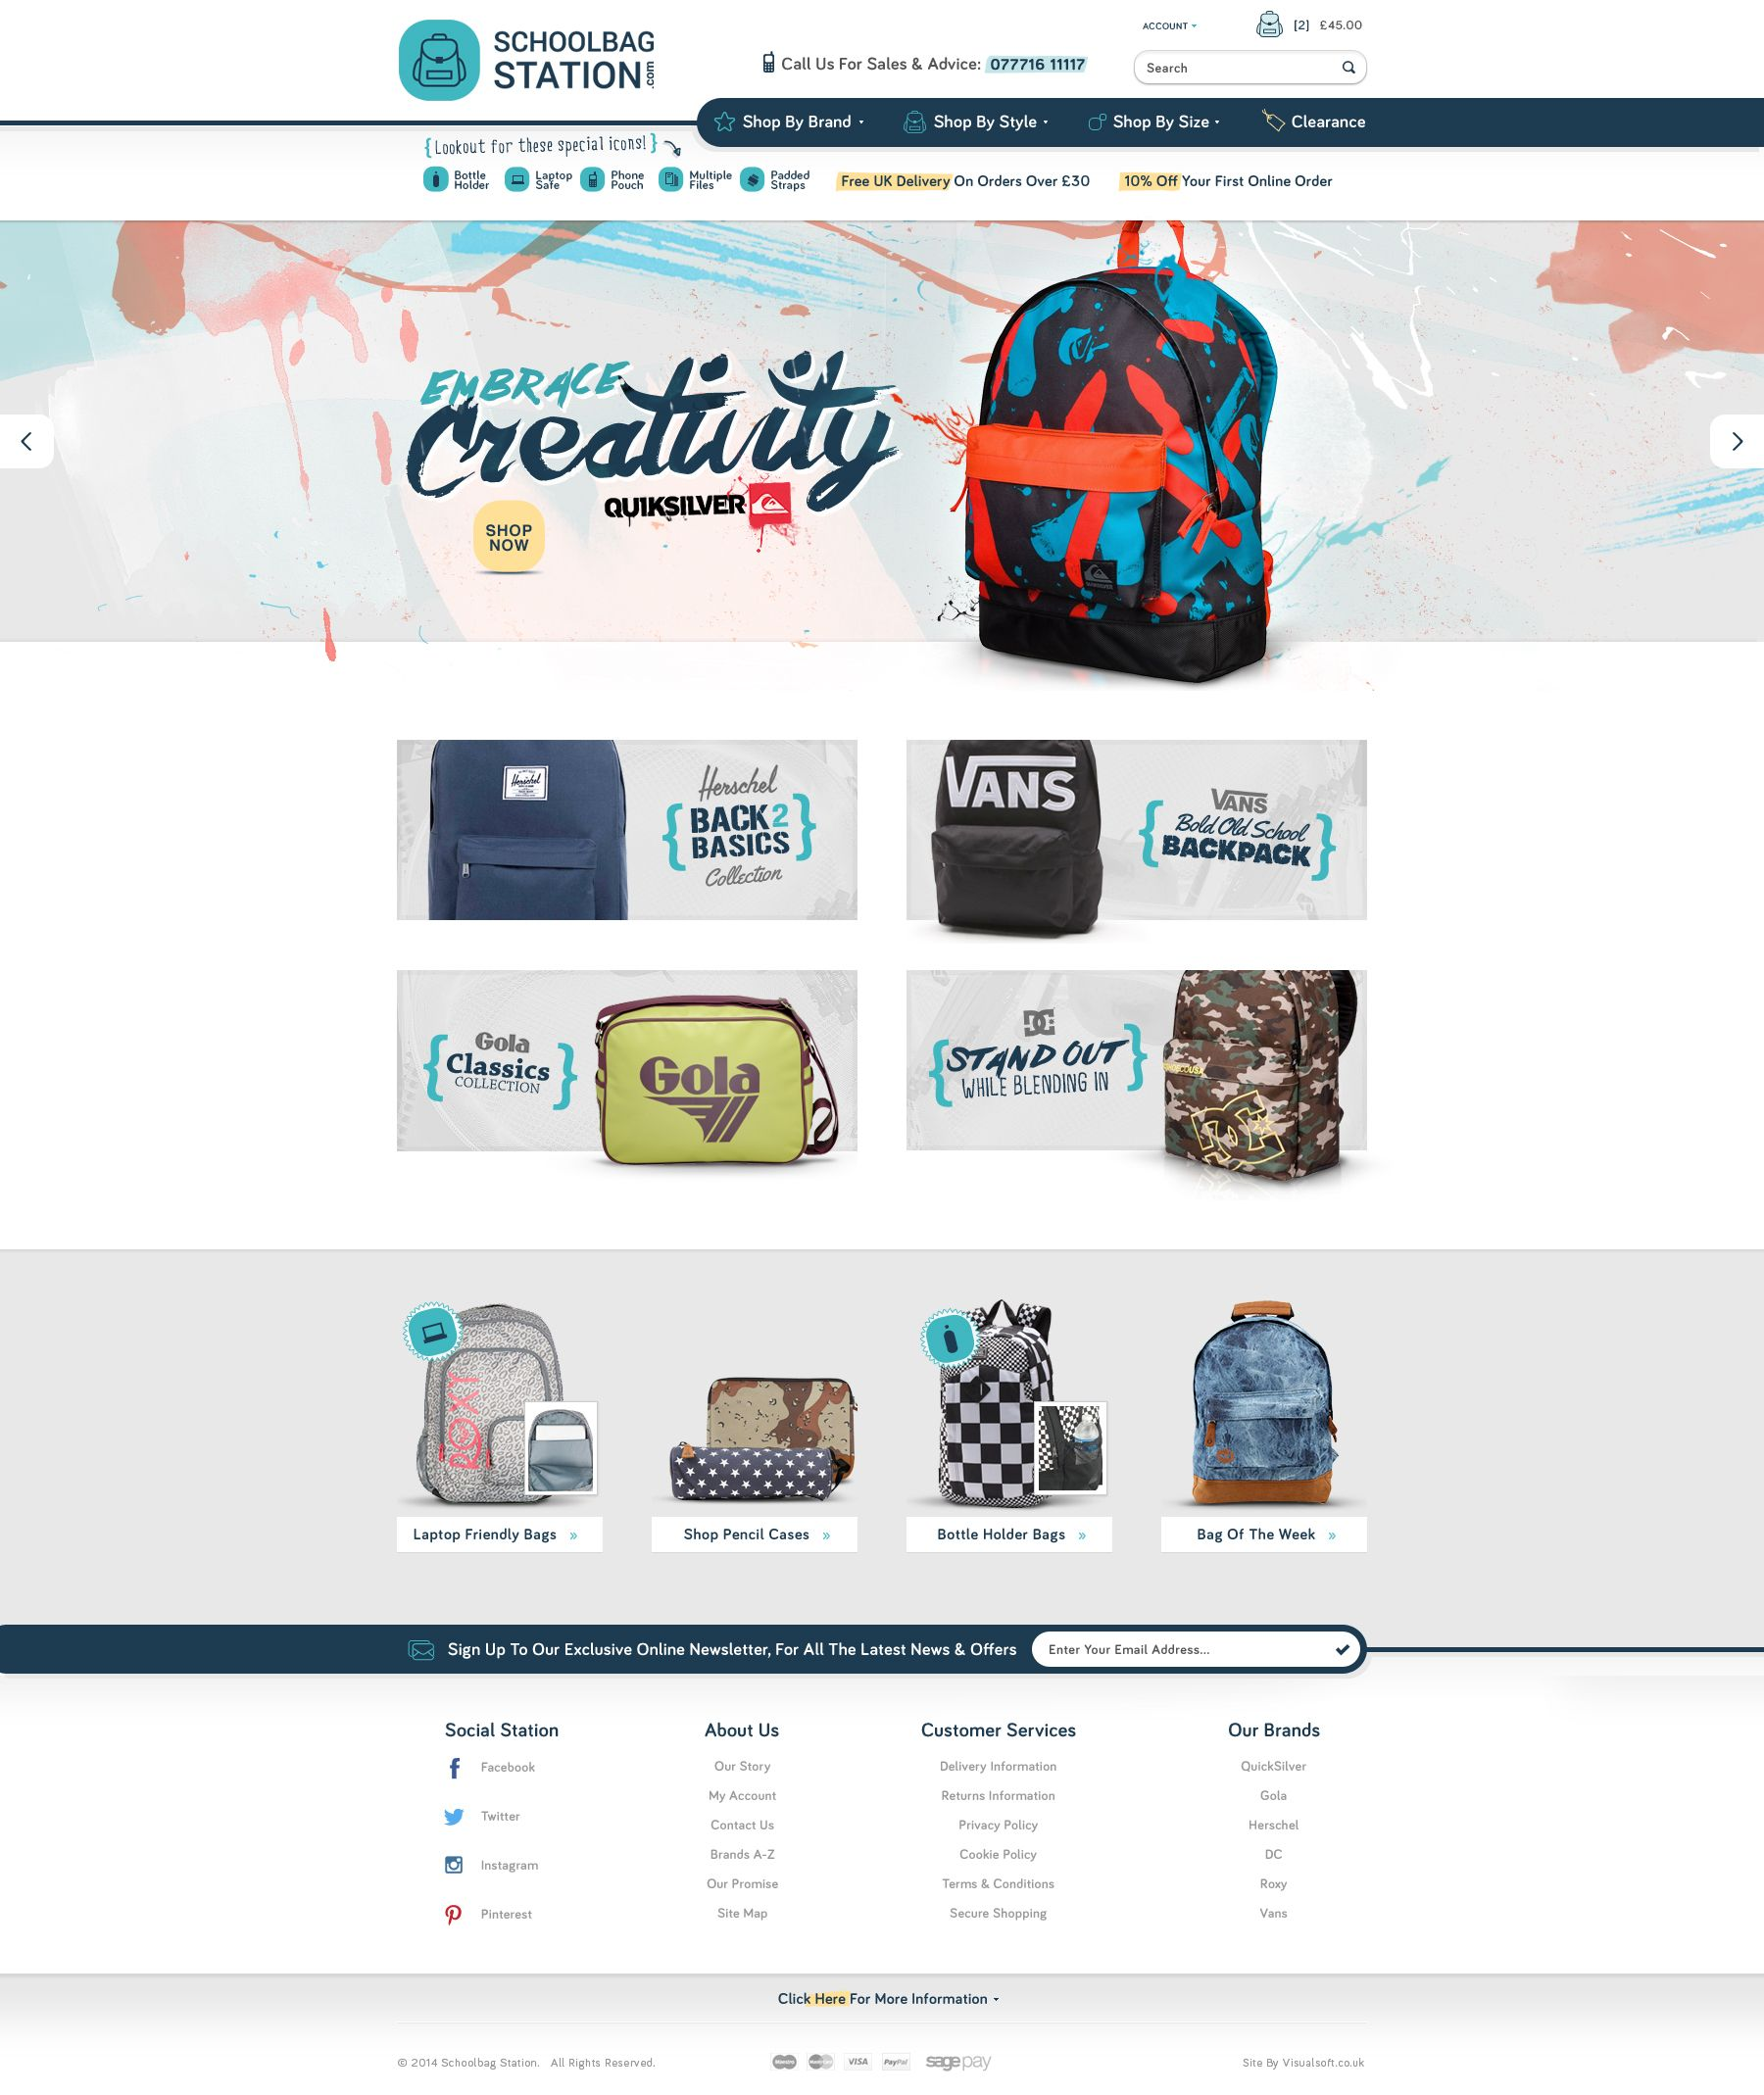 schoolbag web design inspiration web design inspiration web rh pinterest ca